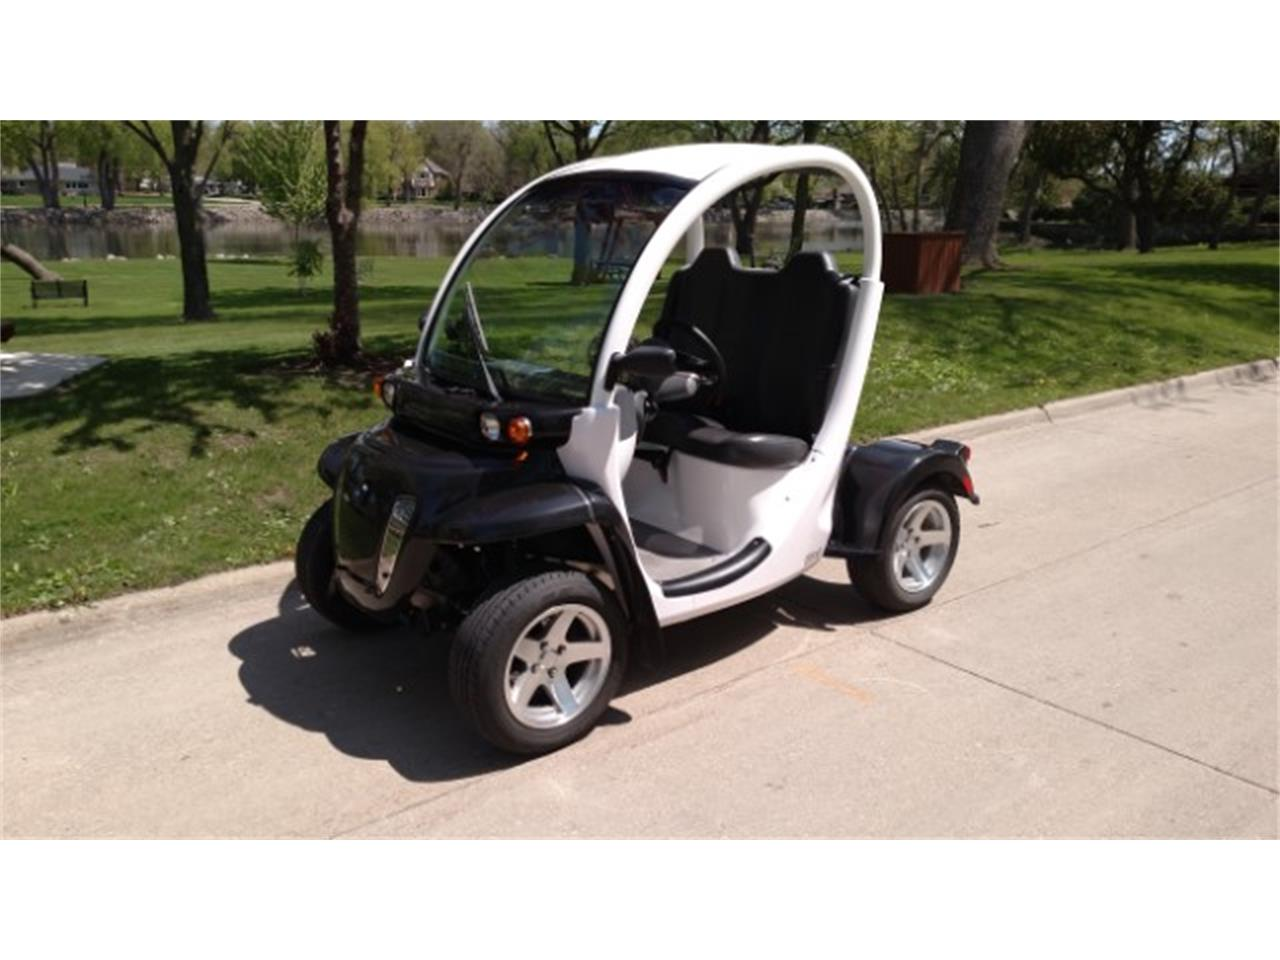 2013 Gem E2 Electric Passenger Vehicle For Sale Classiccars Com